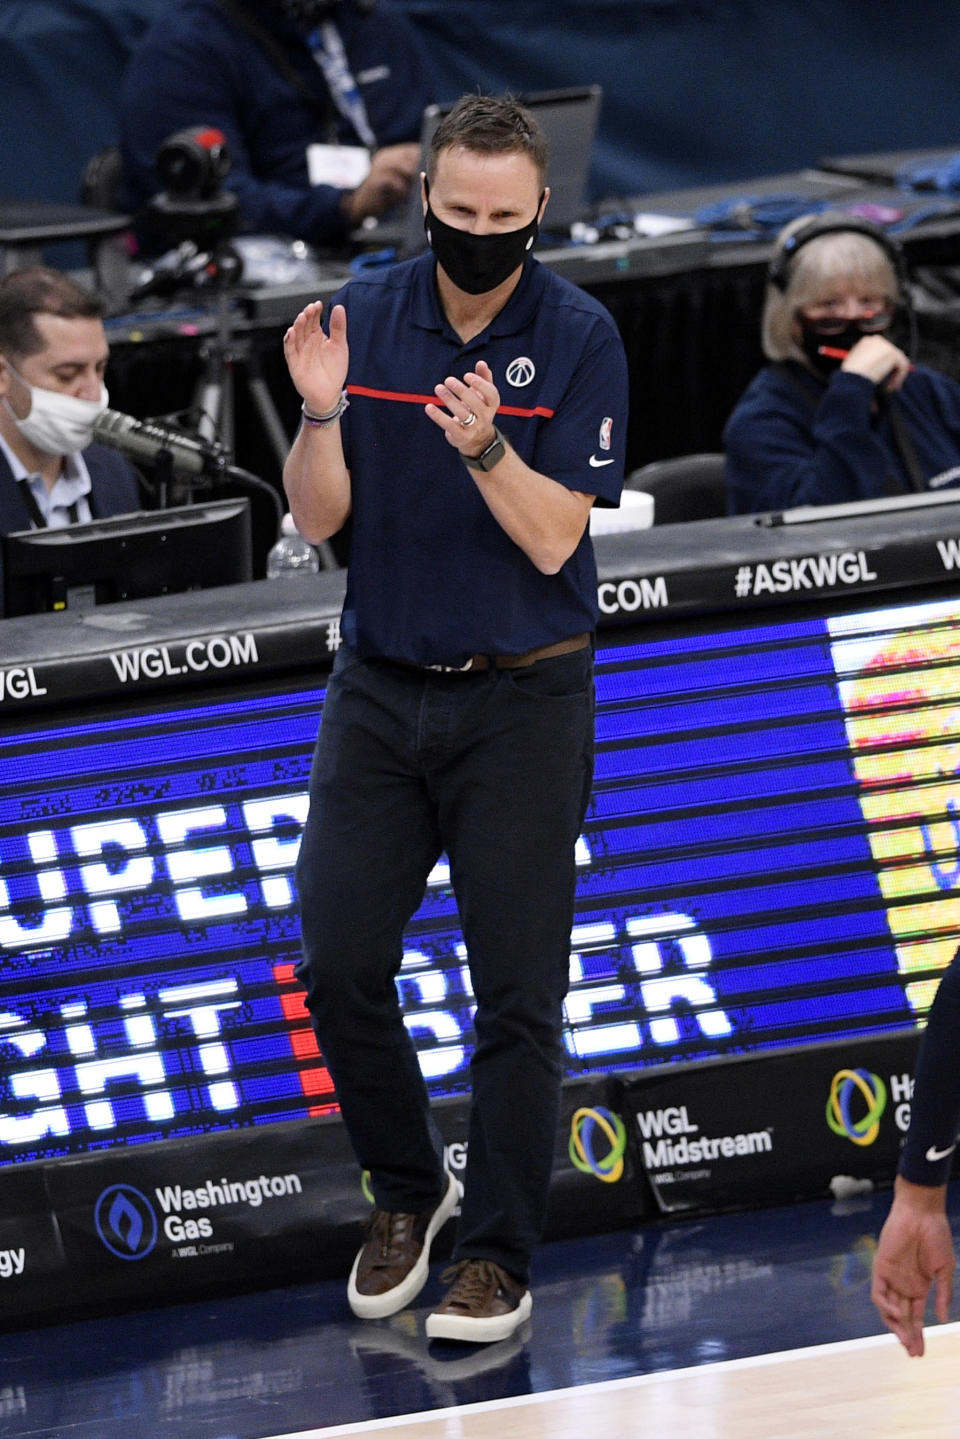 Washington Wizards head coach Scott Brooks reacts during the second half of an NBA basketball game against the Miami Heat, Saturday, Jan. 9, 2021, in Washington. (AP Photo/Nick Wass)